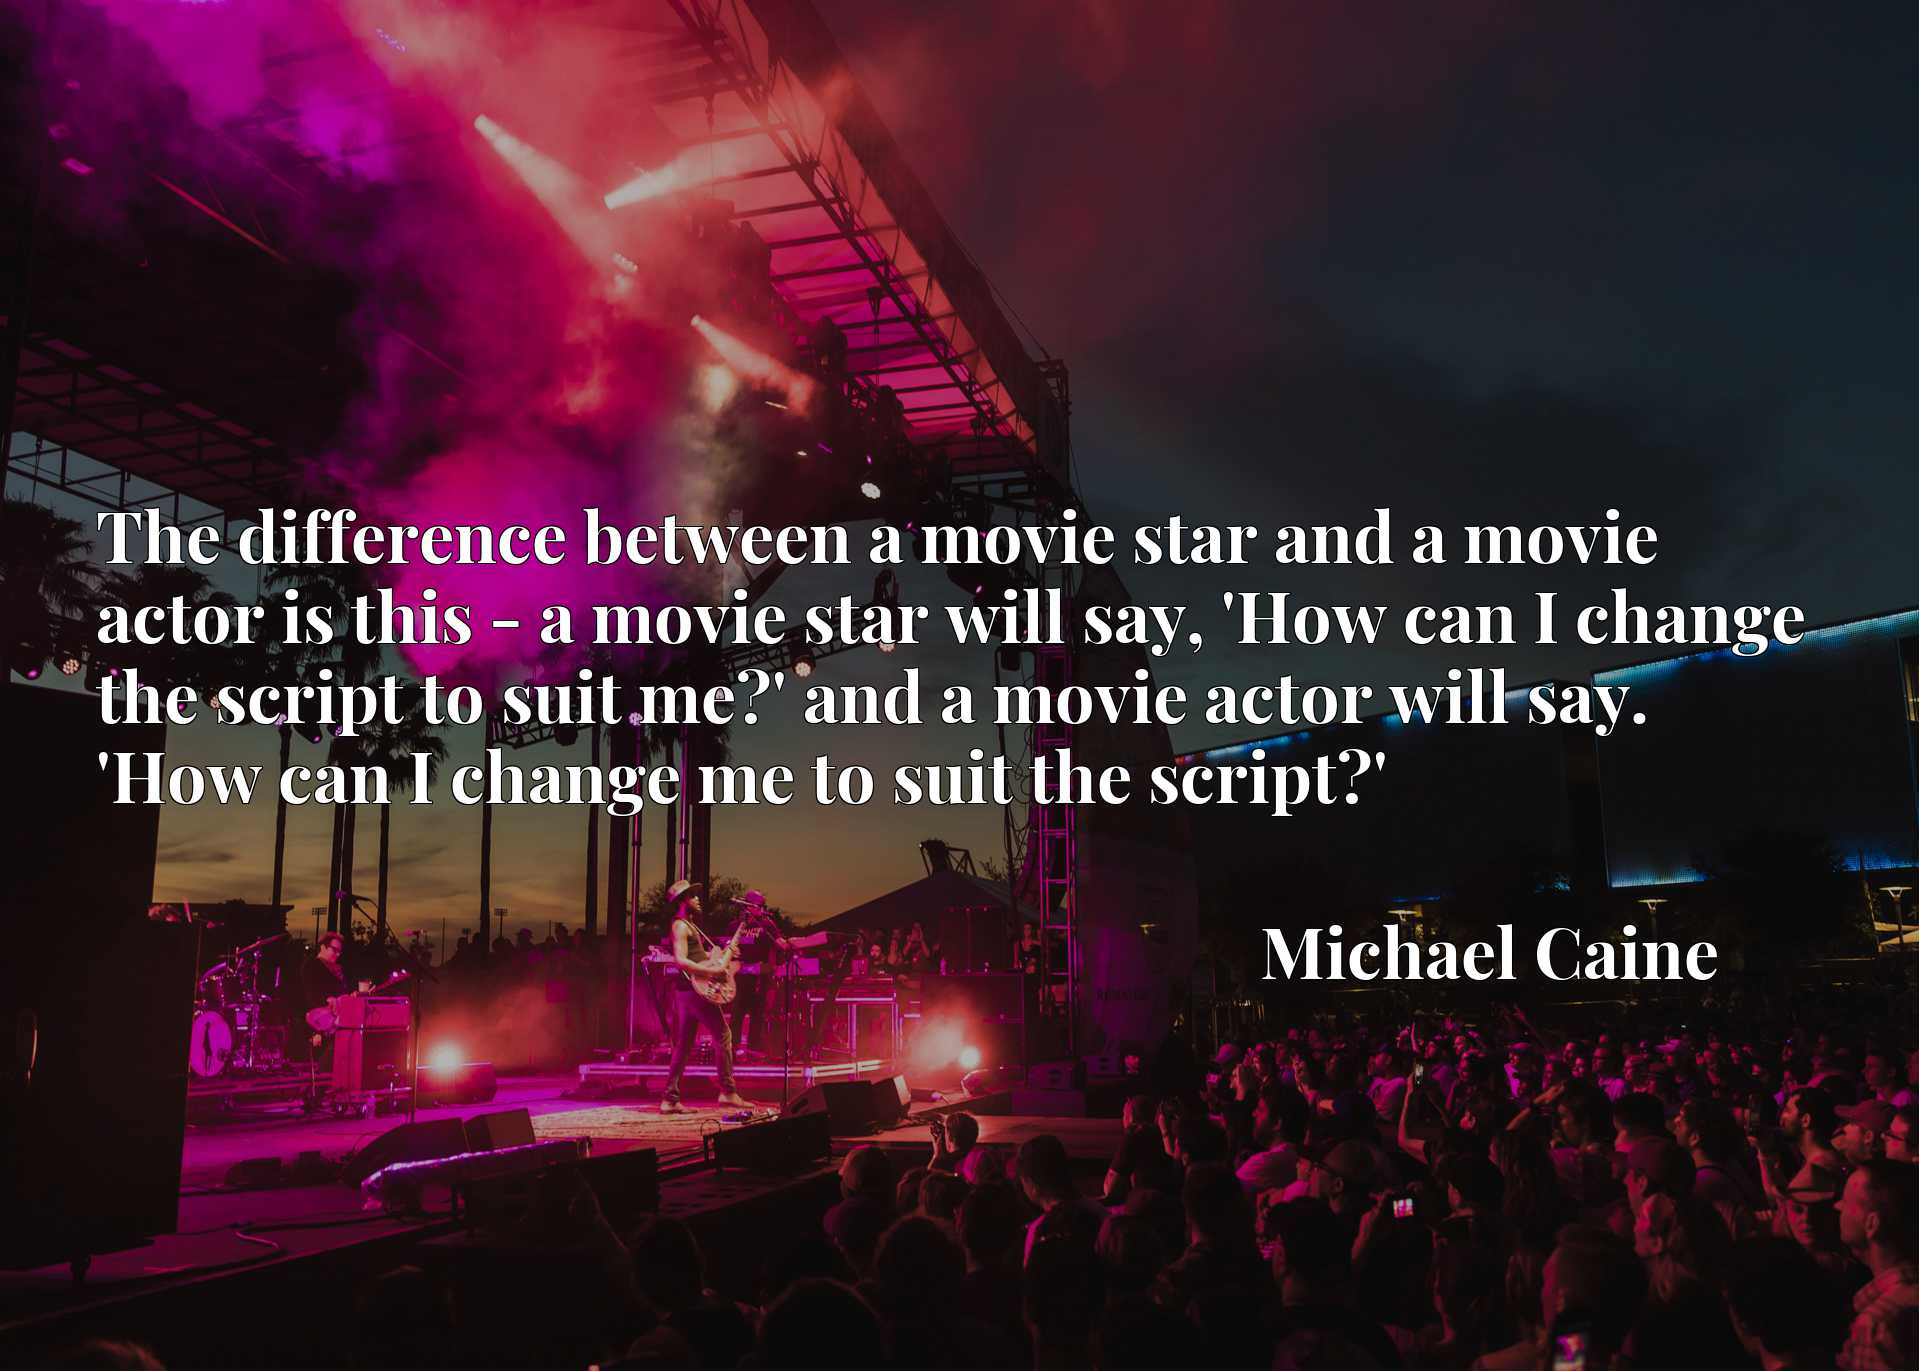 The difference between a movie star and a movie actor is this - a movie star will say, 'How can I change the script to suit me?' and a movie actor will say. 'How can I change me to suit the script?'